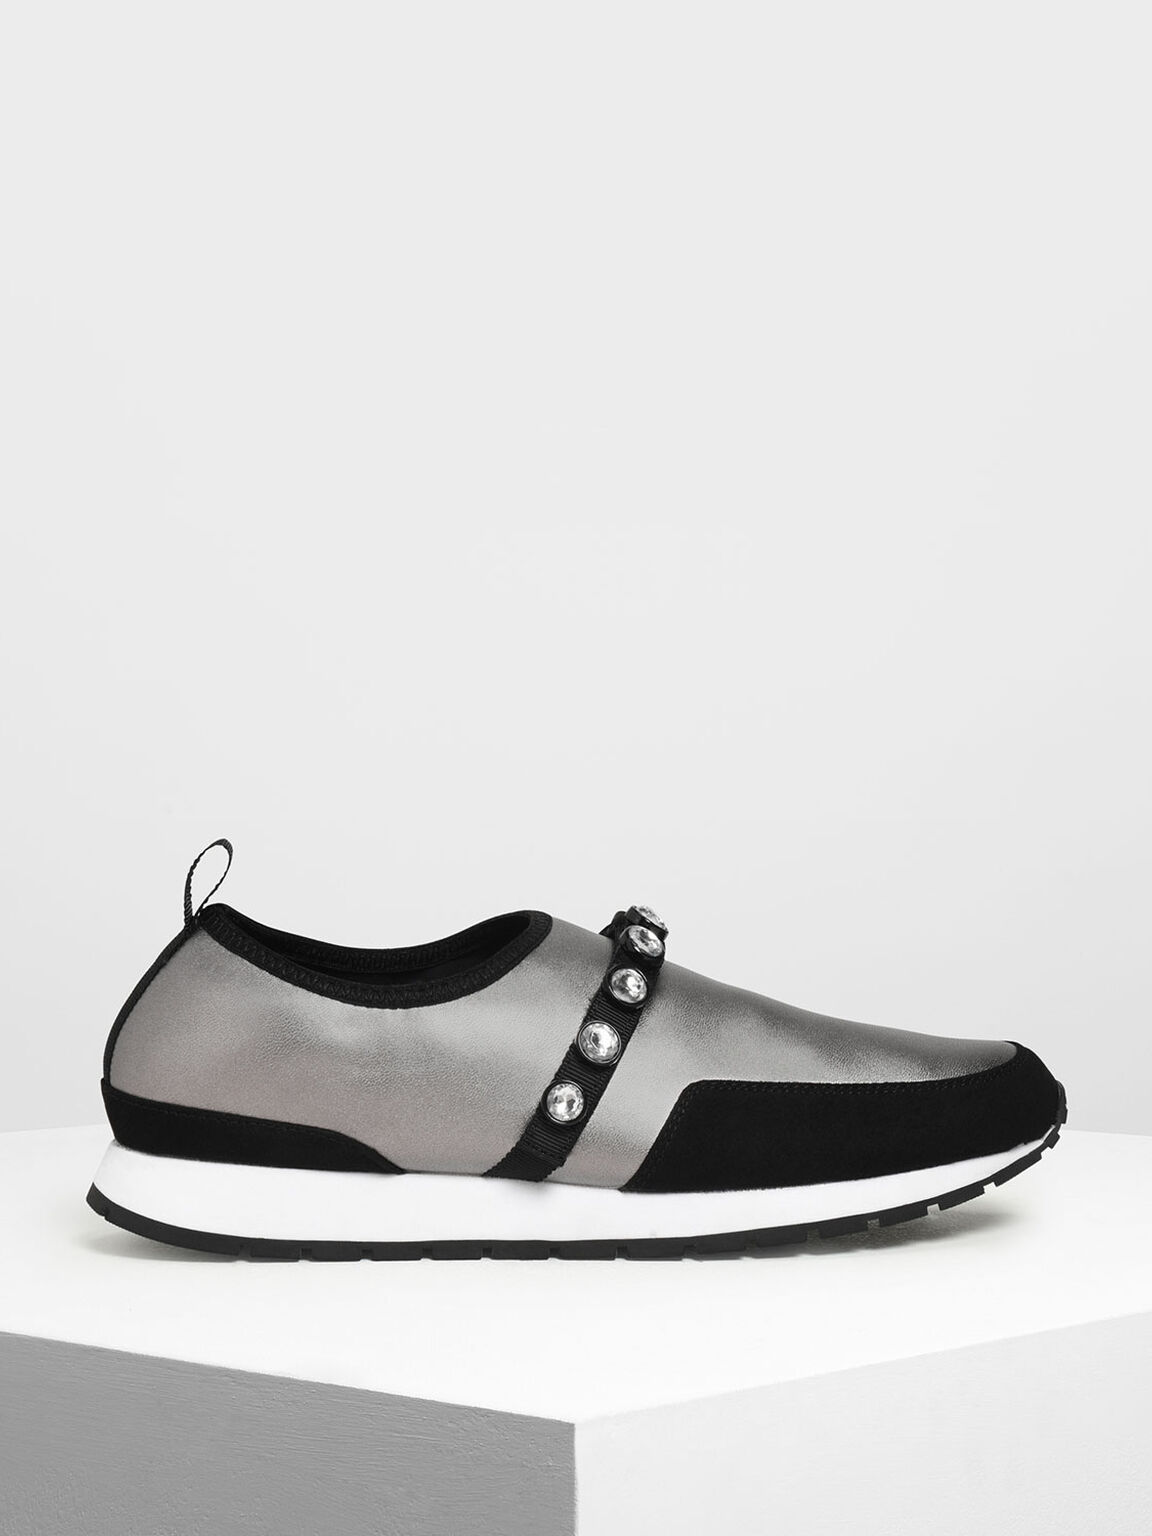 Embellished Slip-On Sneakers, Silver, hi-res